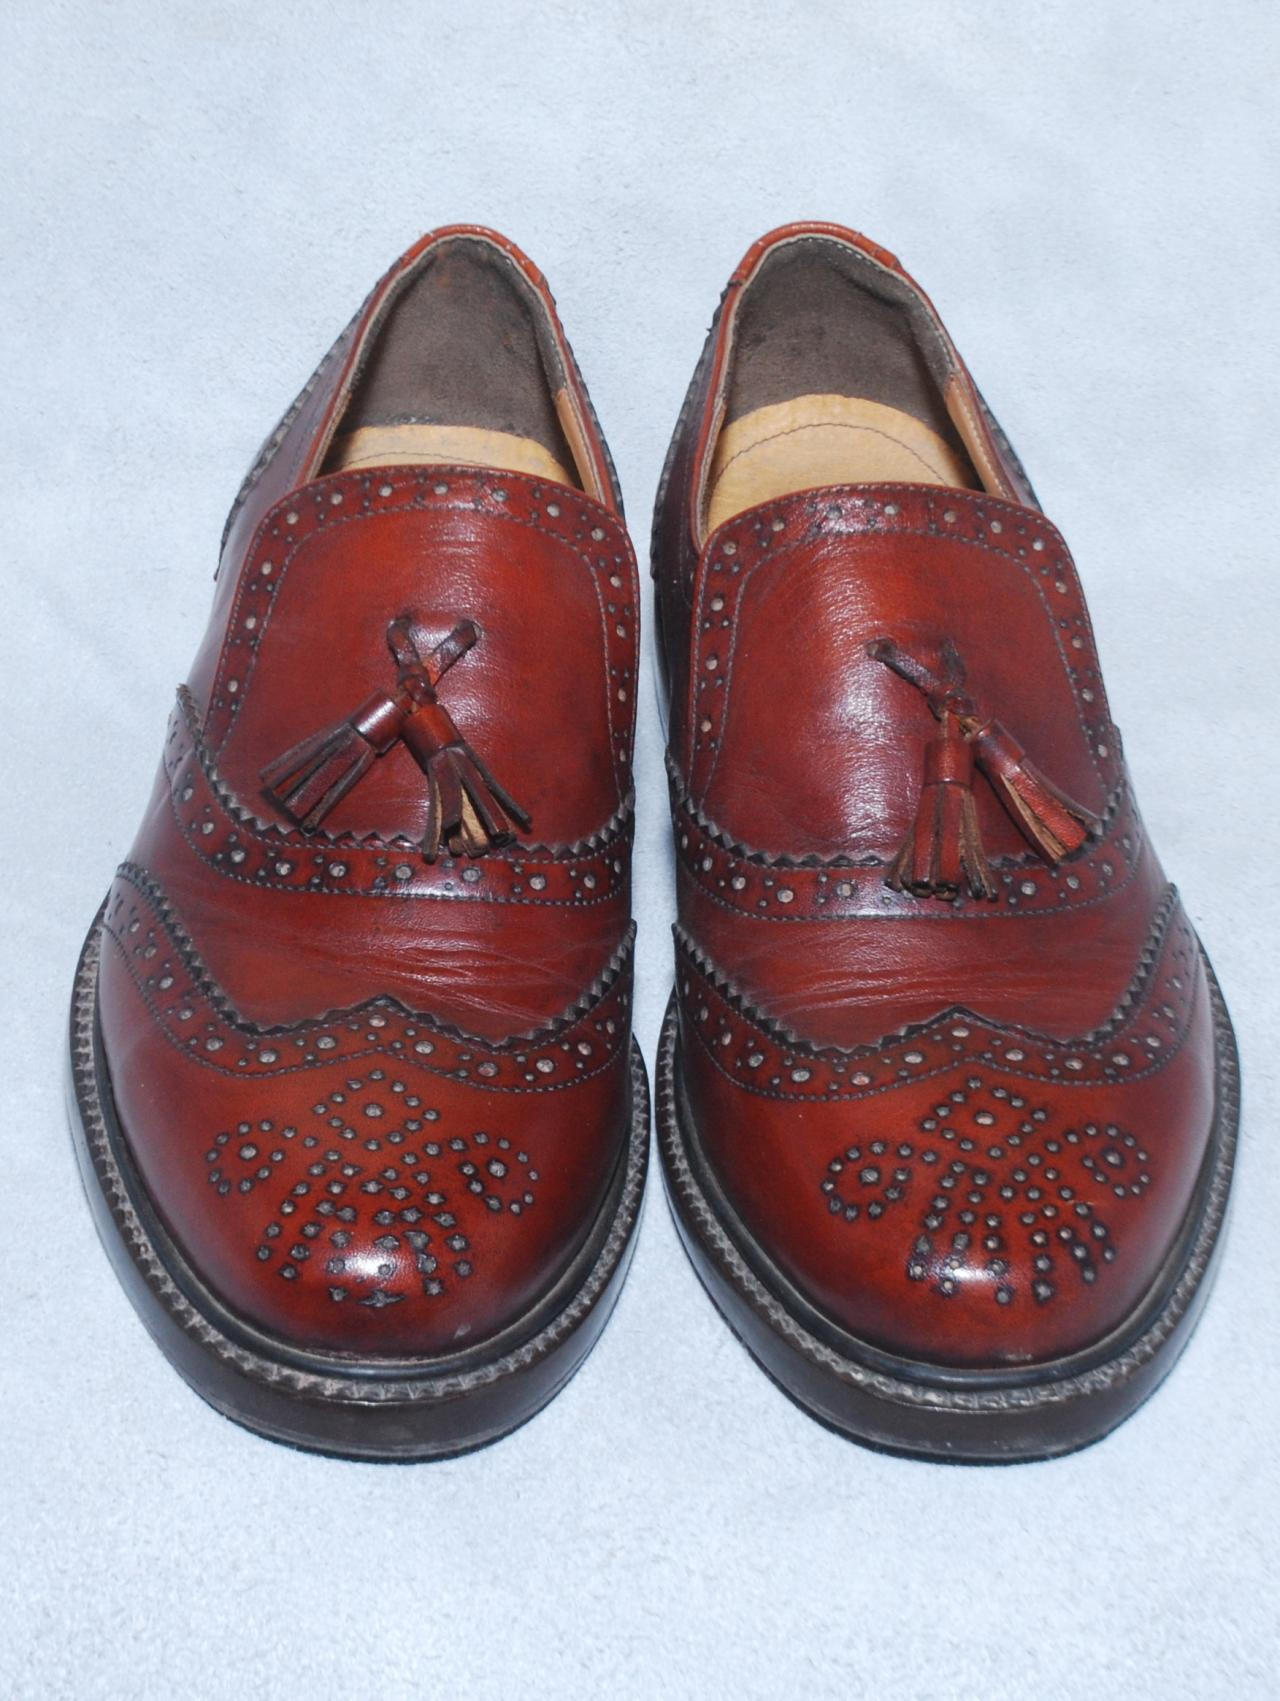 Moccasins Red Tassels Wing Tip Full Brogues Genuine Leather Loafers For Men